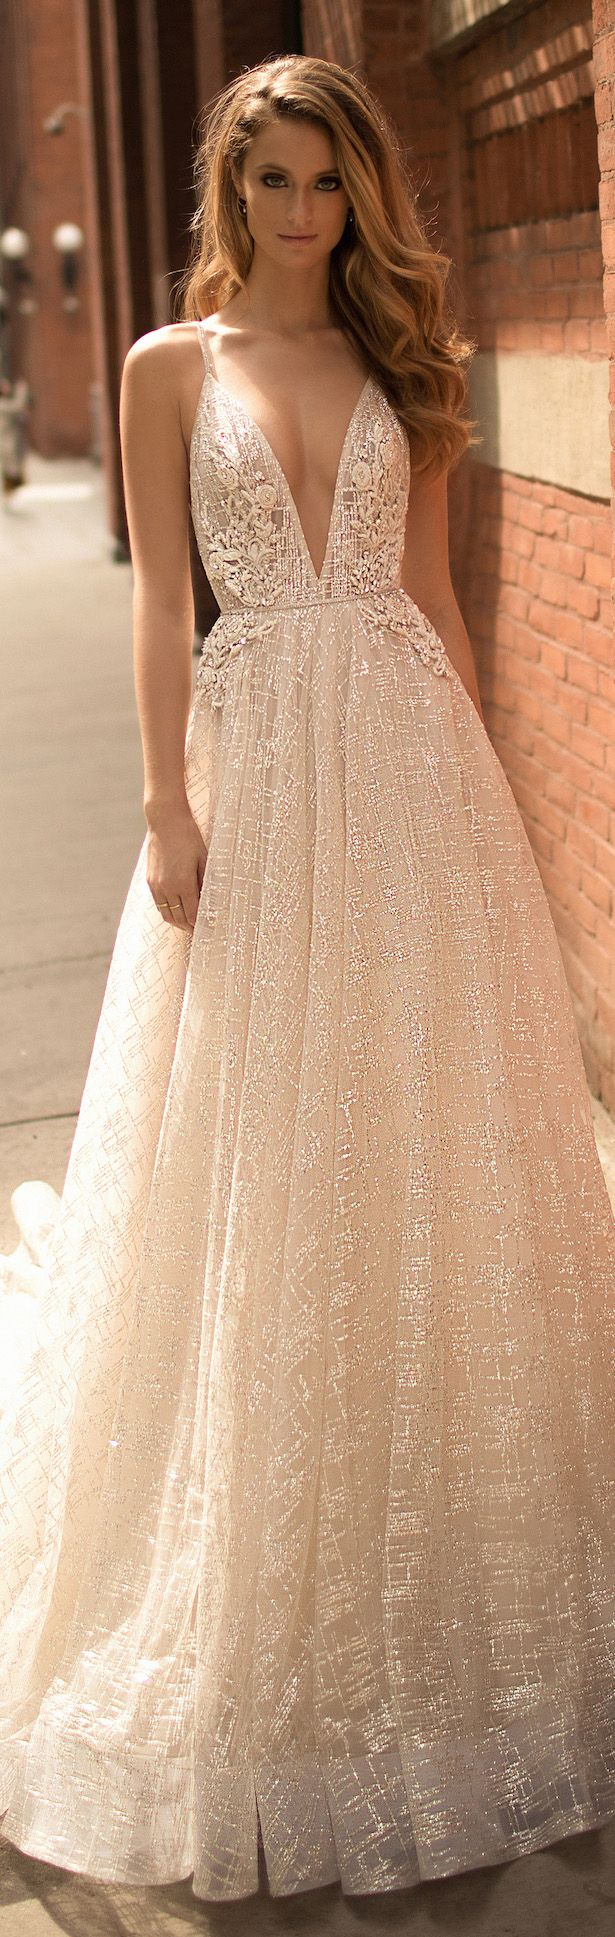 Berta wedding dress collection spring maybe one day